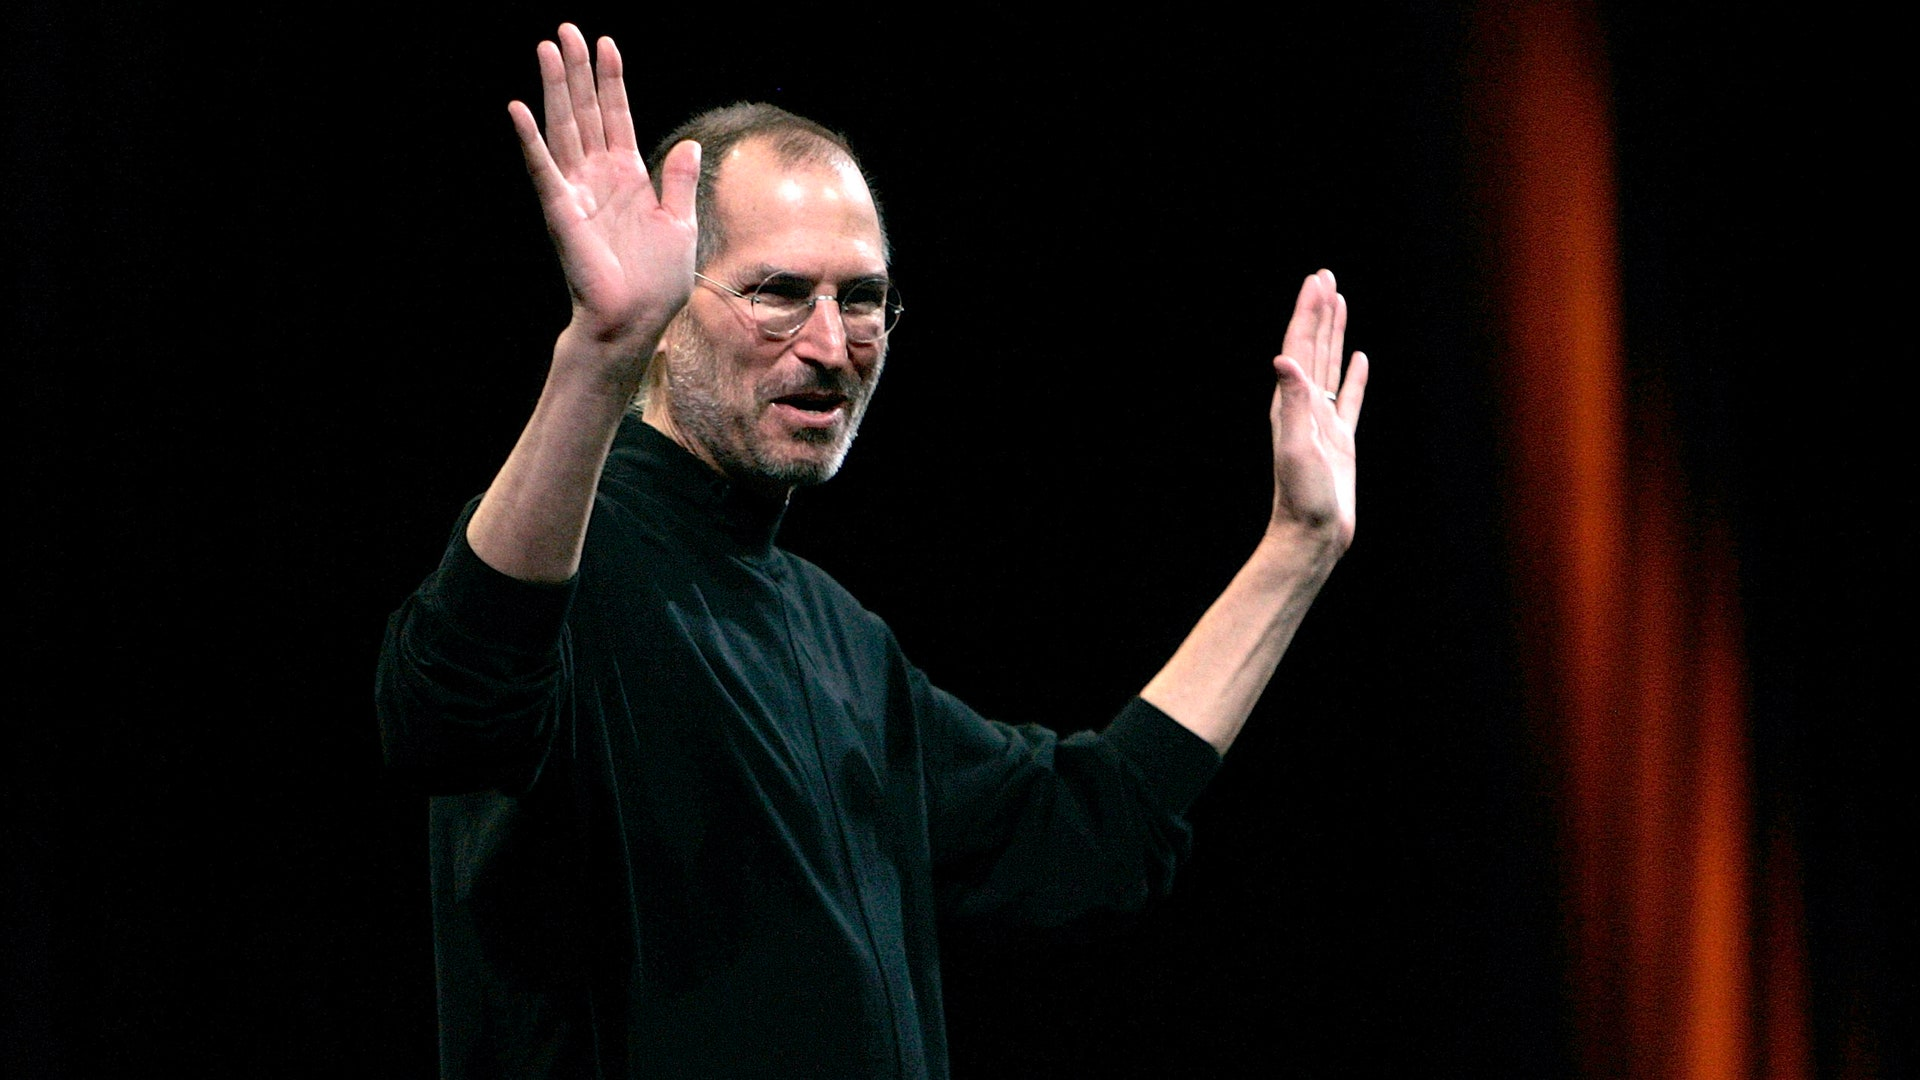 1631706996 10 iconic work looks from Steve Jobs to Giorgio Armani